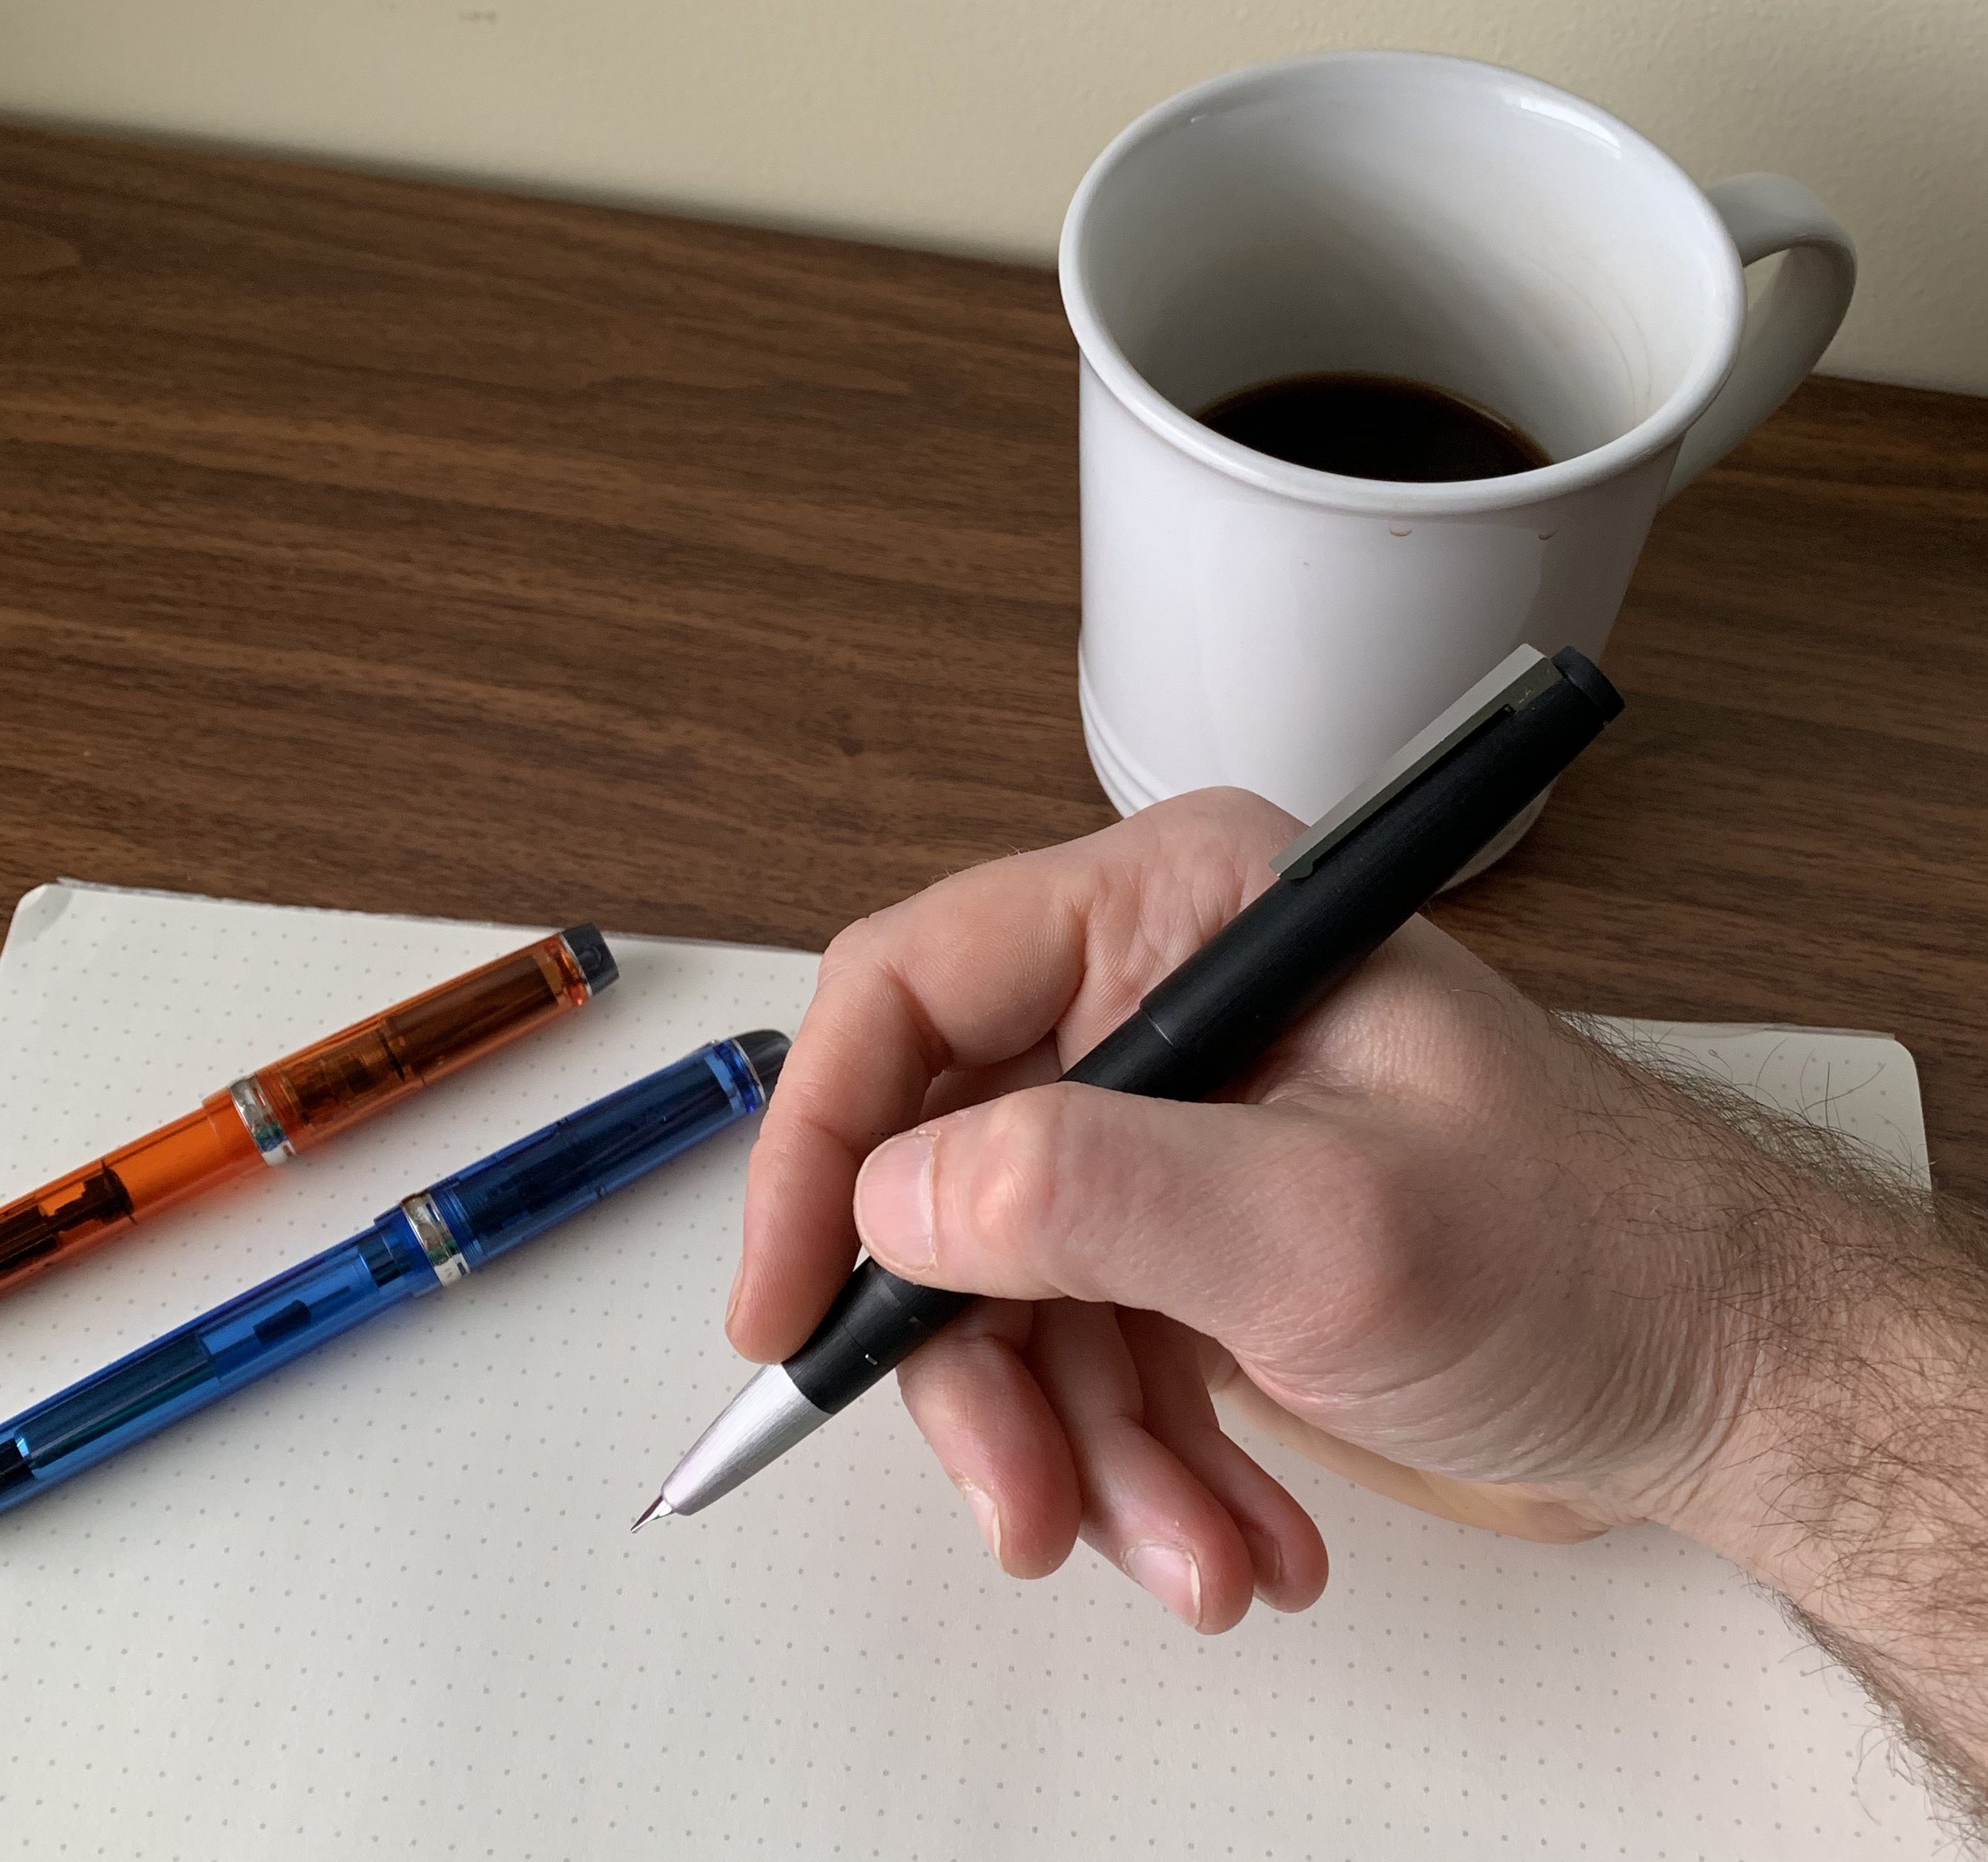 Most people won't notice that the Lamy 2000 fountain pen isn't a ballpoint or a rollerball.